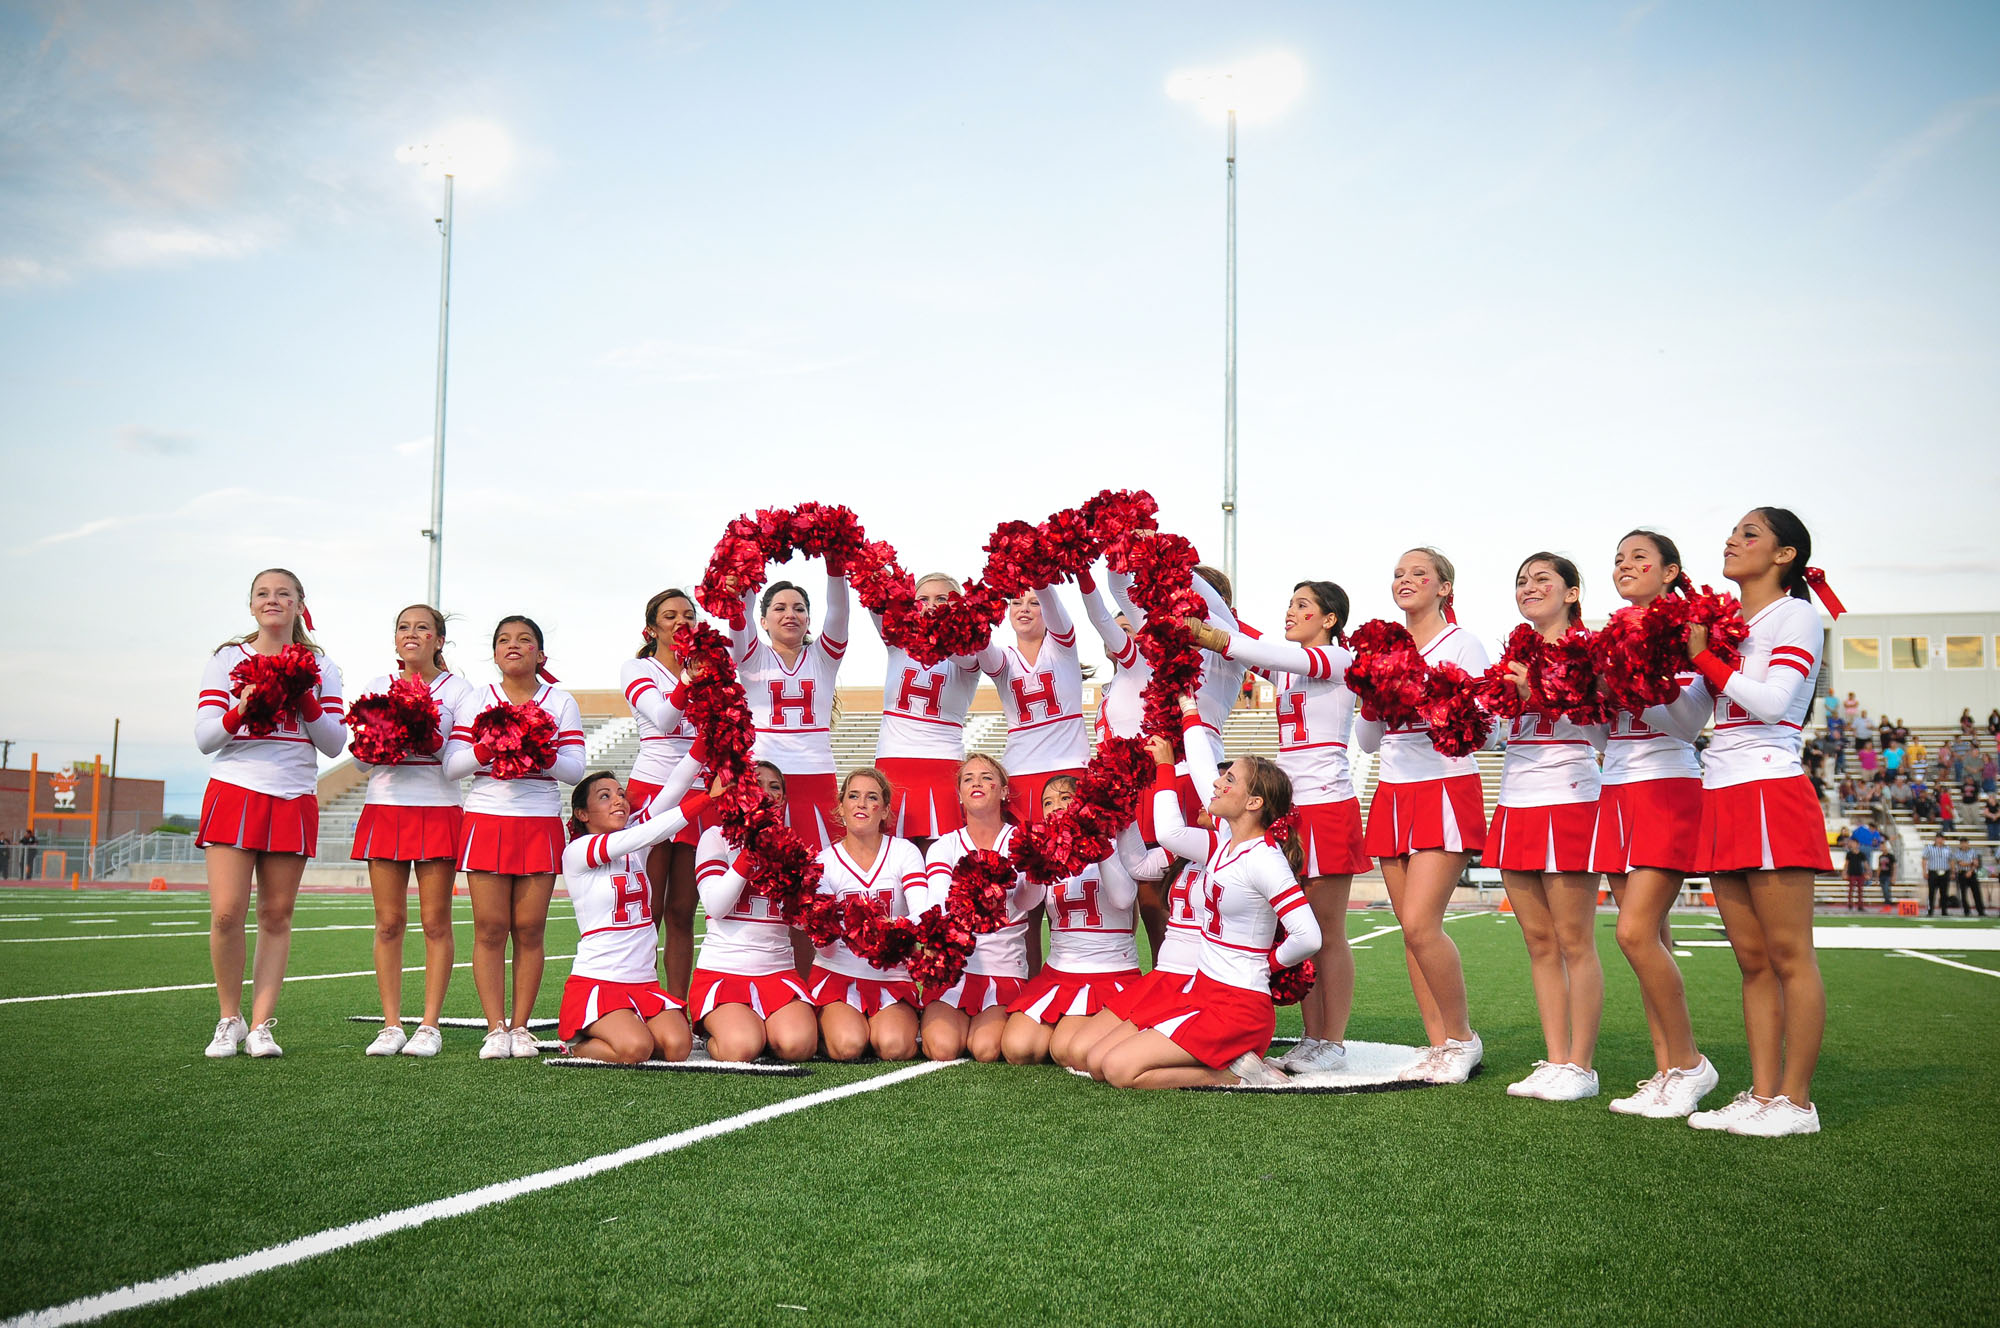 HHS Cheerleaders perform at Macy's Thanksgiving Day Parade